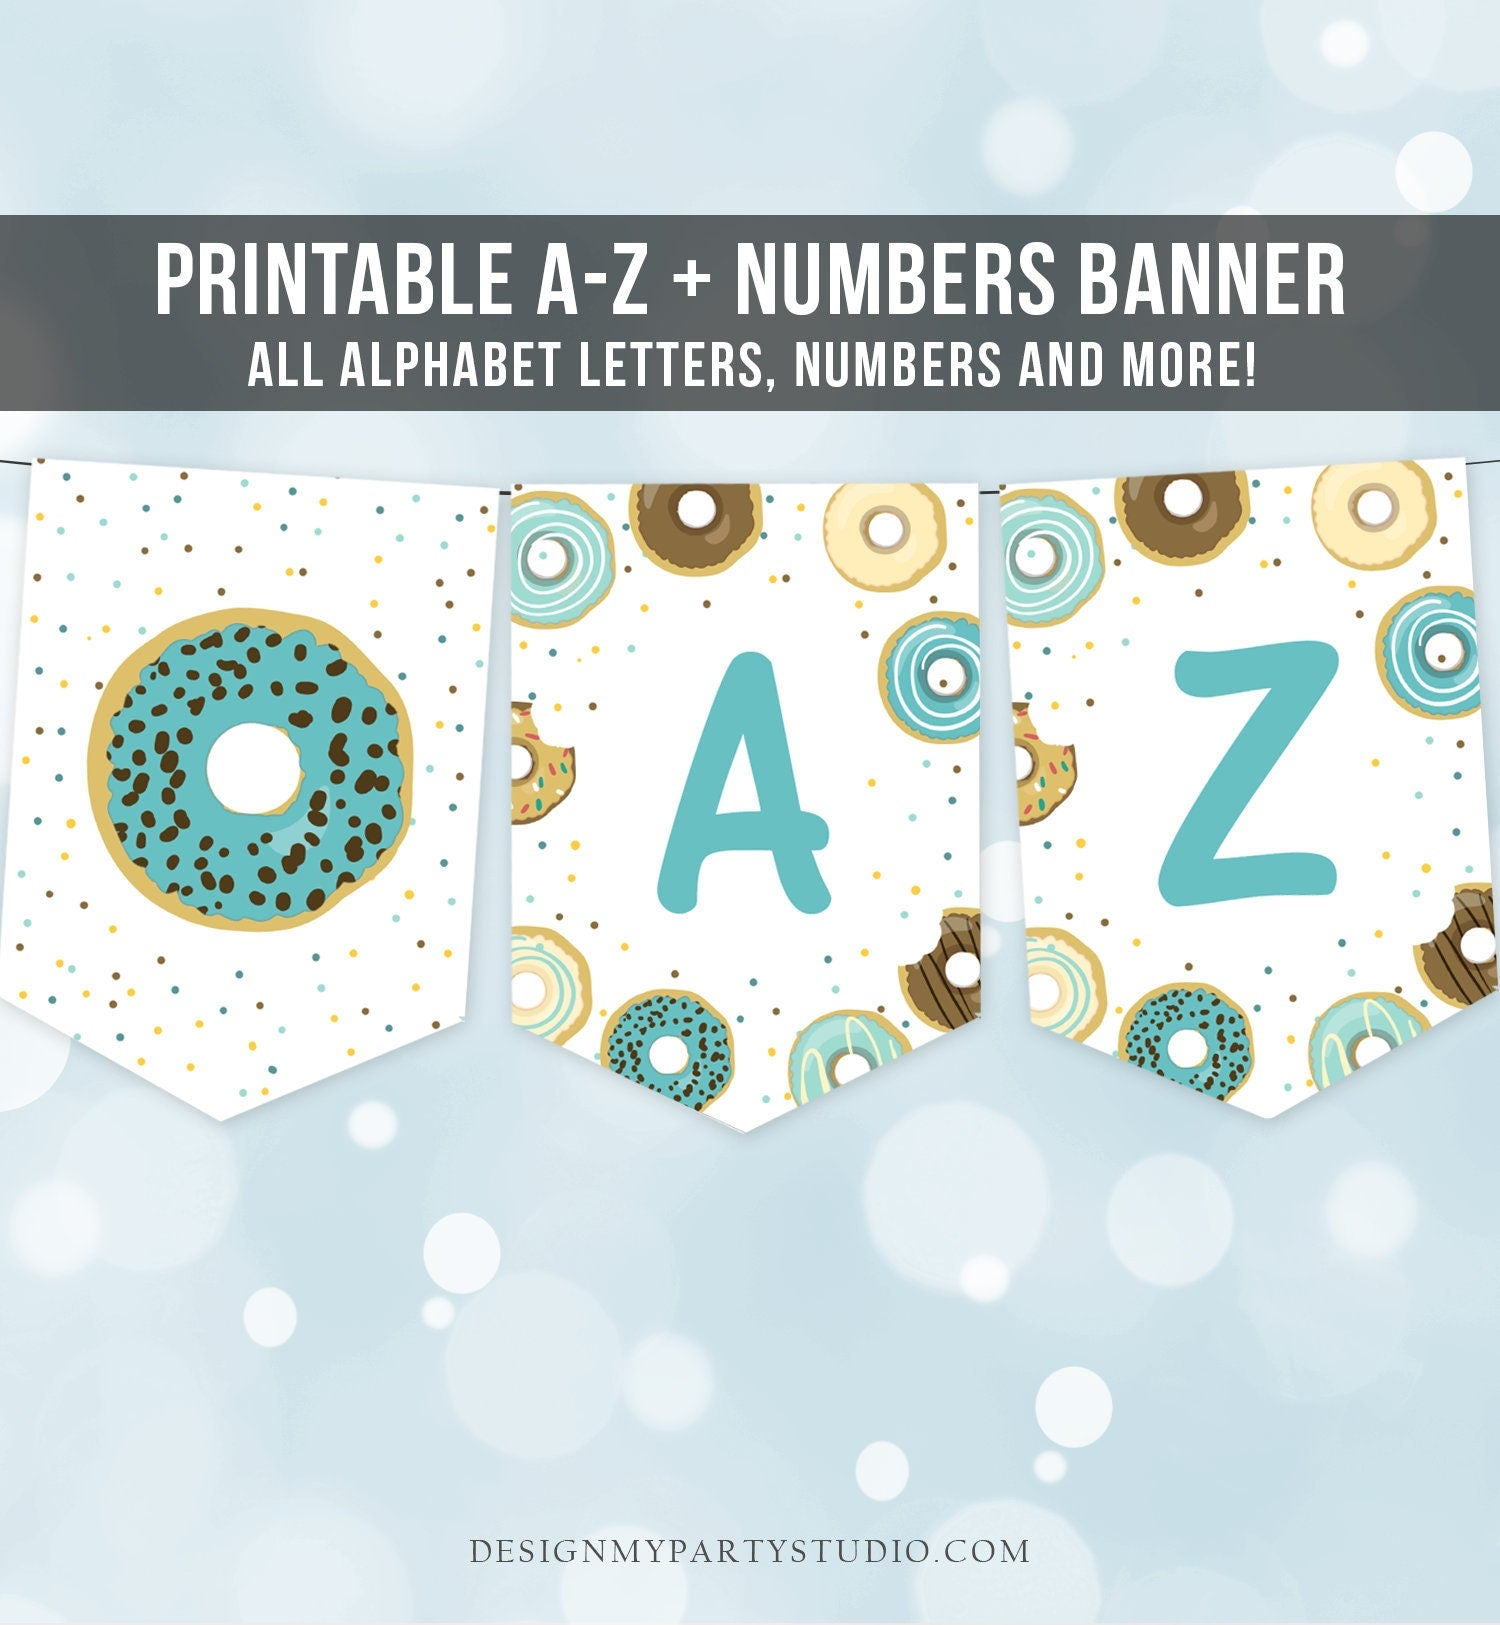 Donut Birthday Banner A-Z Alphabet Numbers Banner Boy Blue Doughnut Party Happy Birthday Decoration Digital Download Printable 0050